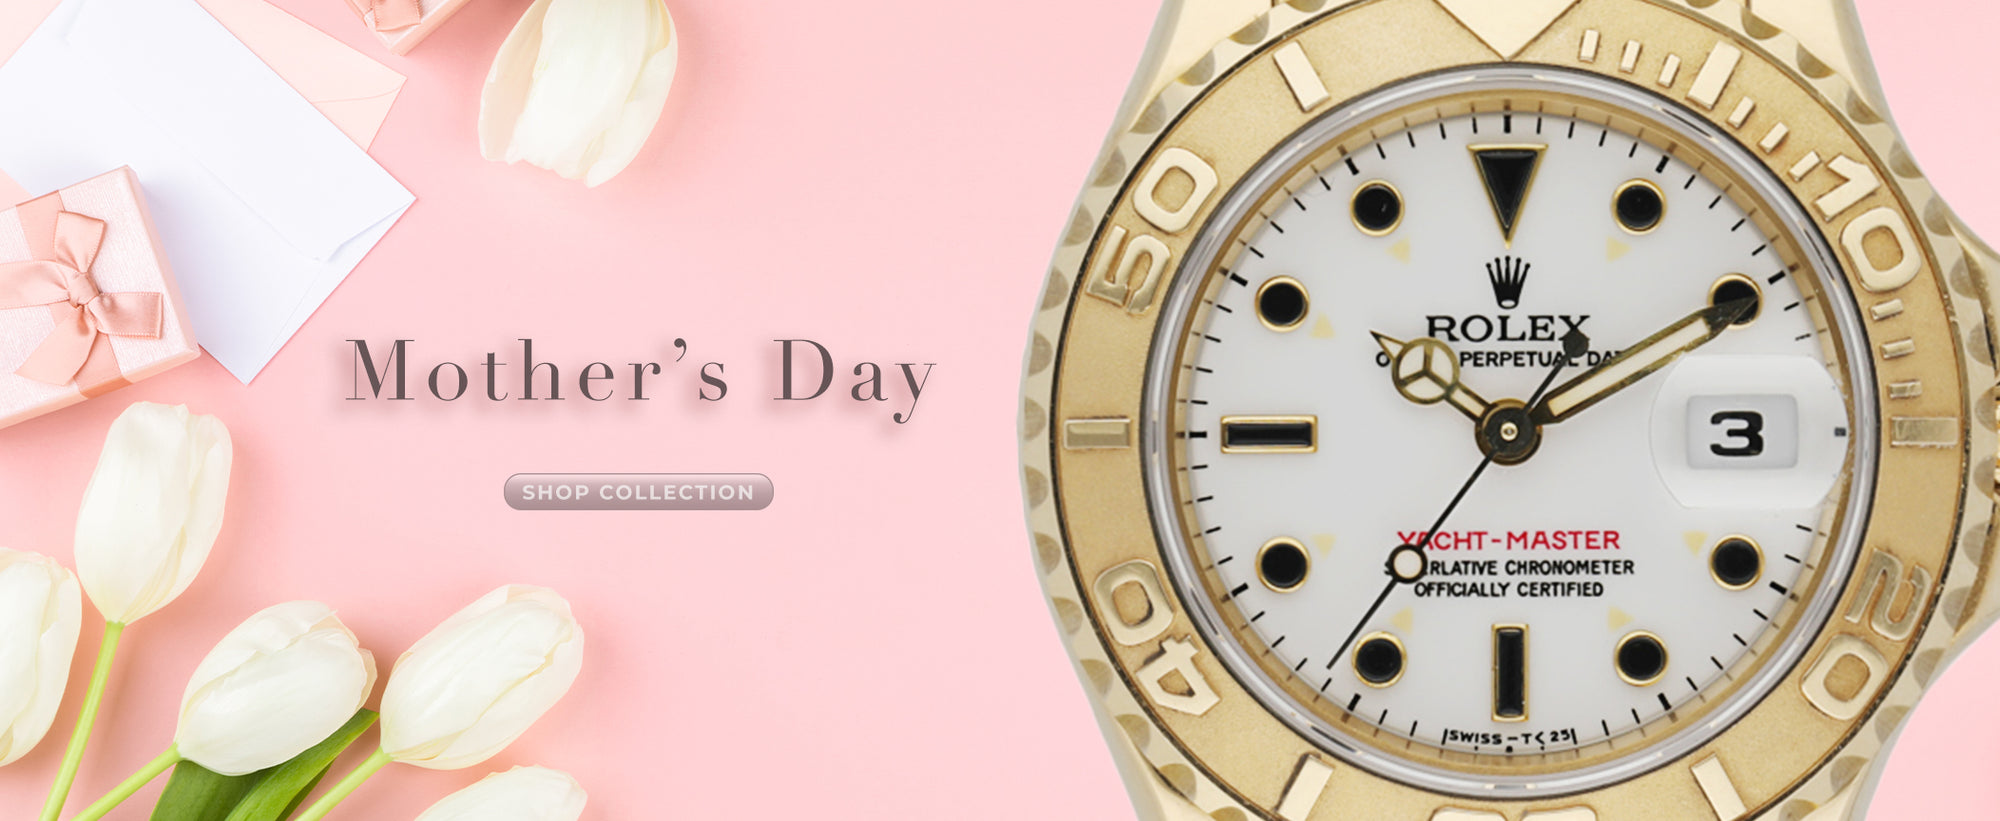 Pre-Owned watches for ladies. Rolex, Cartier, Omega, Patek Philippe, Audemars Piguet. We buy and sell used luxury watches.